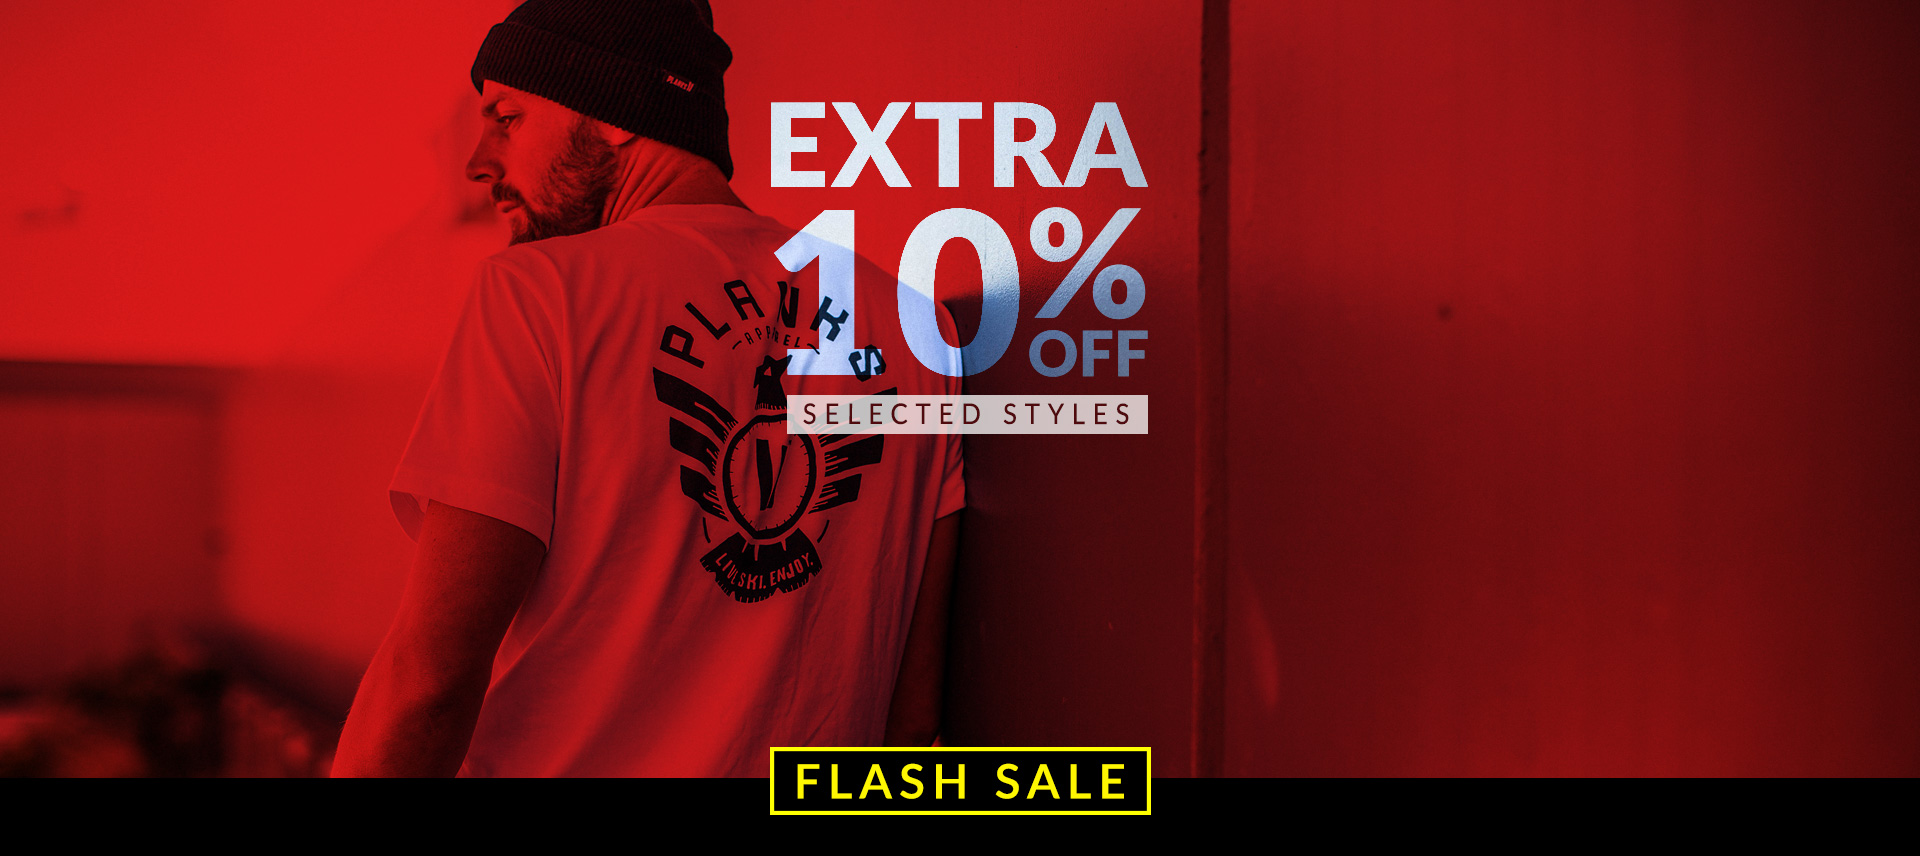 EXTRA 10% OFF SELECTED STYLES*